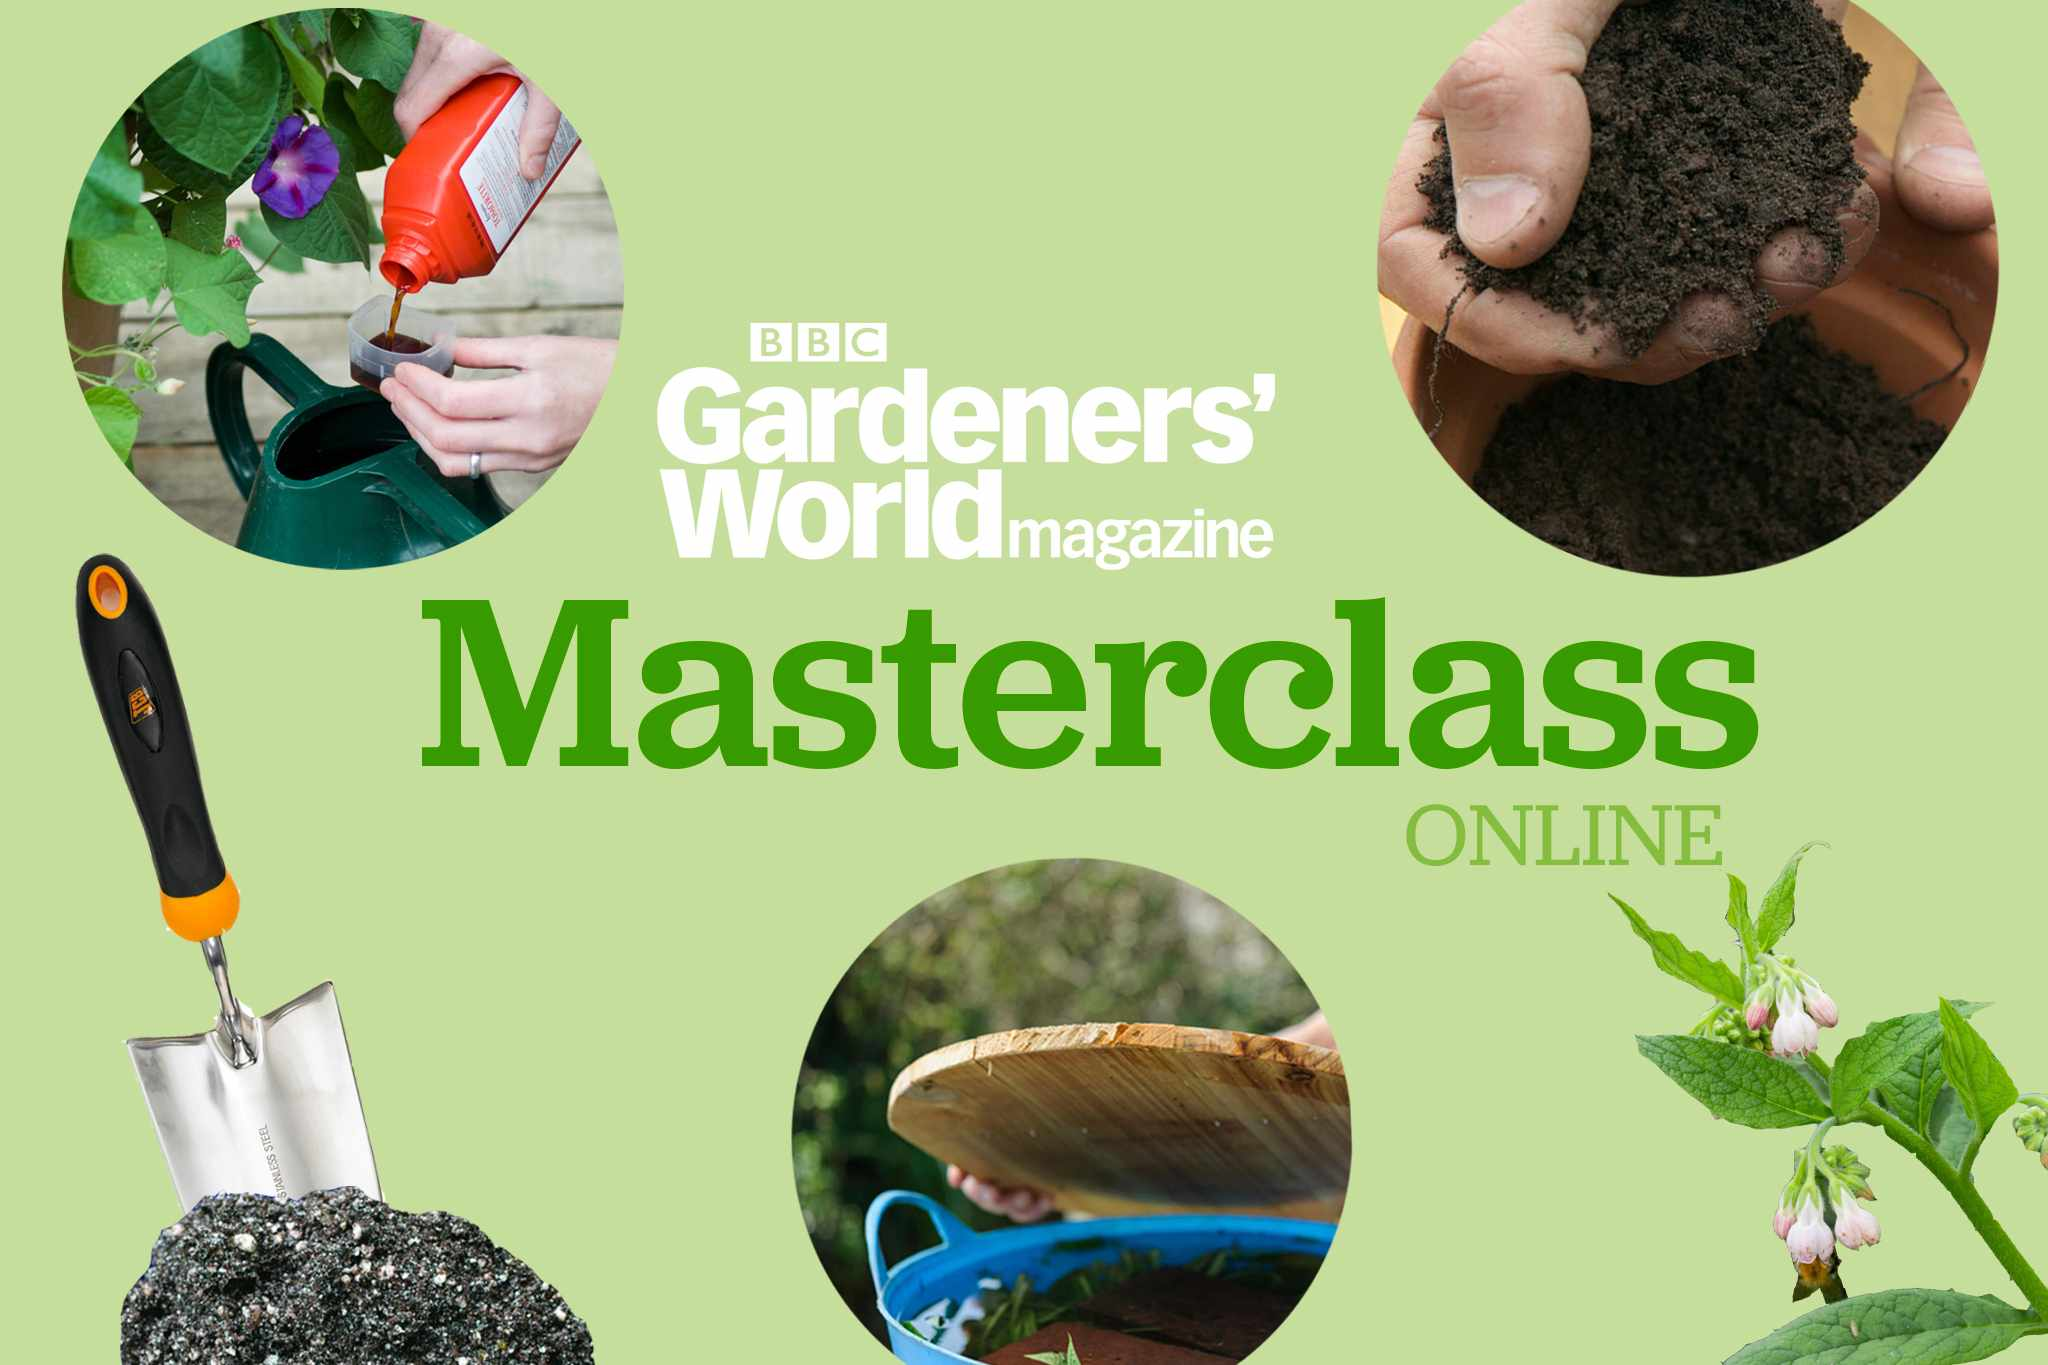 Masterclass Online: Compost and Feeding